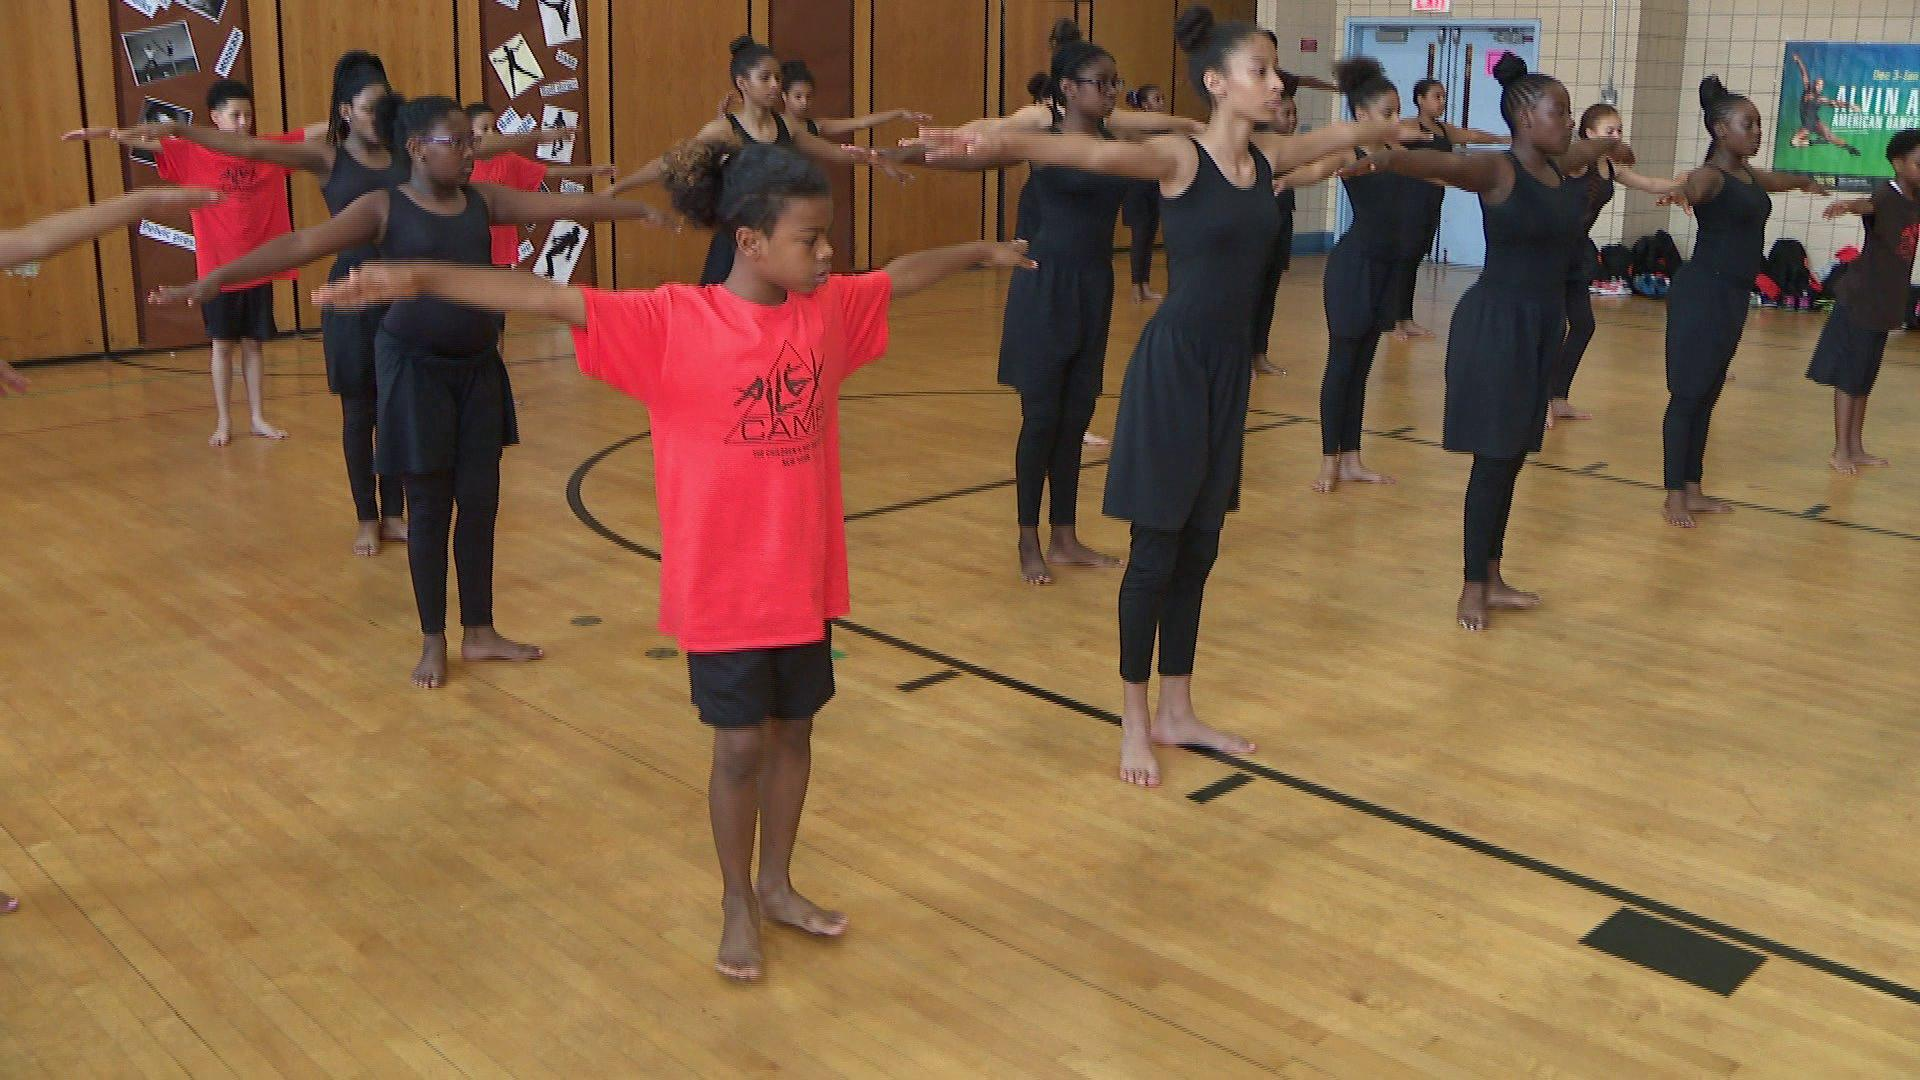 Alvin Ailey American Dance Theater Offers Free Dance Classes, Confidence Boost to Kids in Need